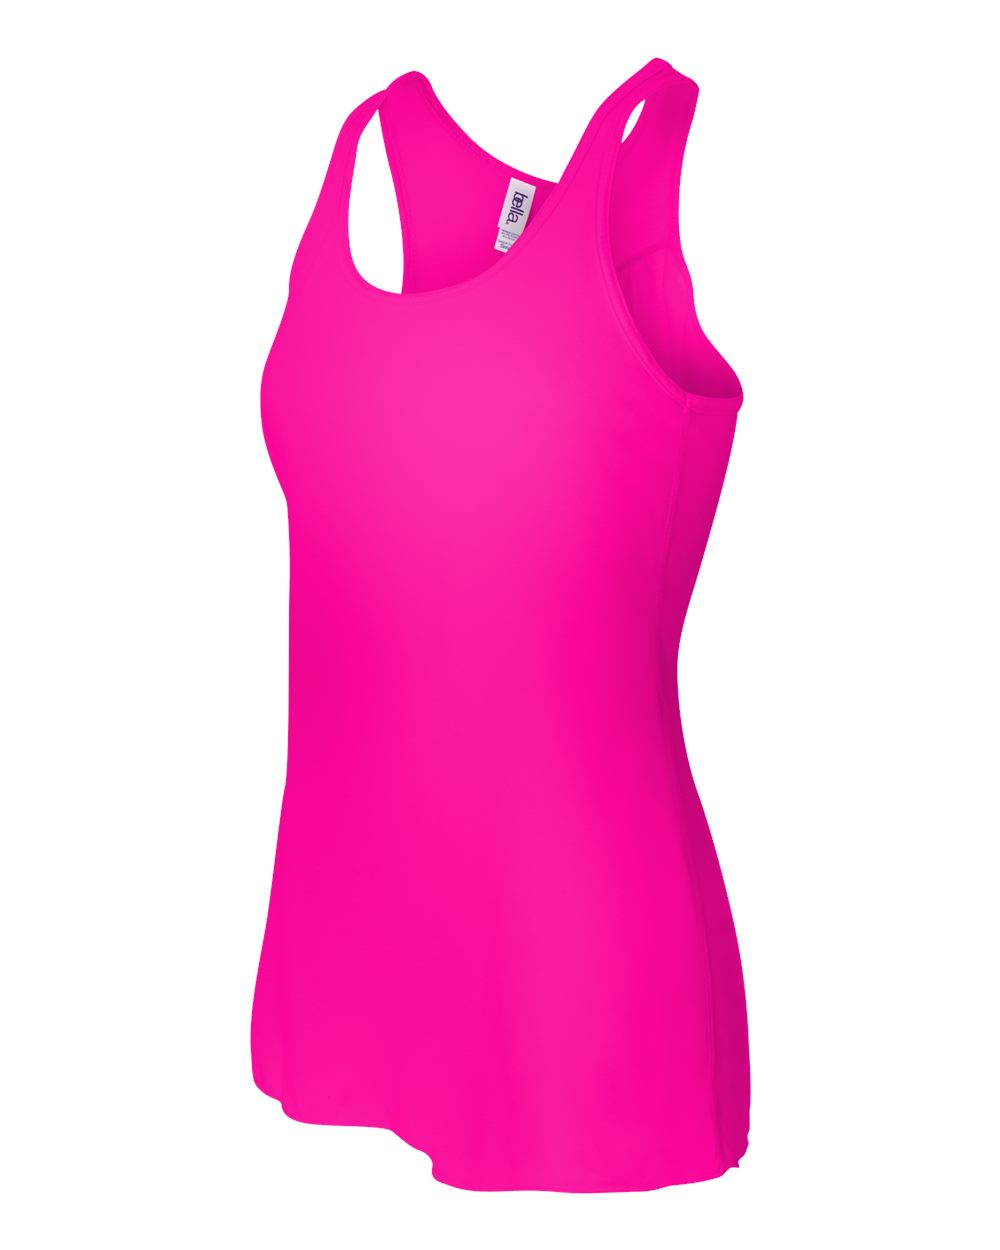 Neon Pink Shirts For Women